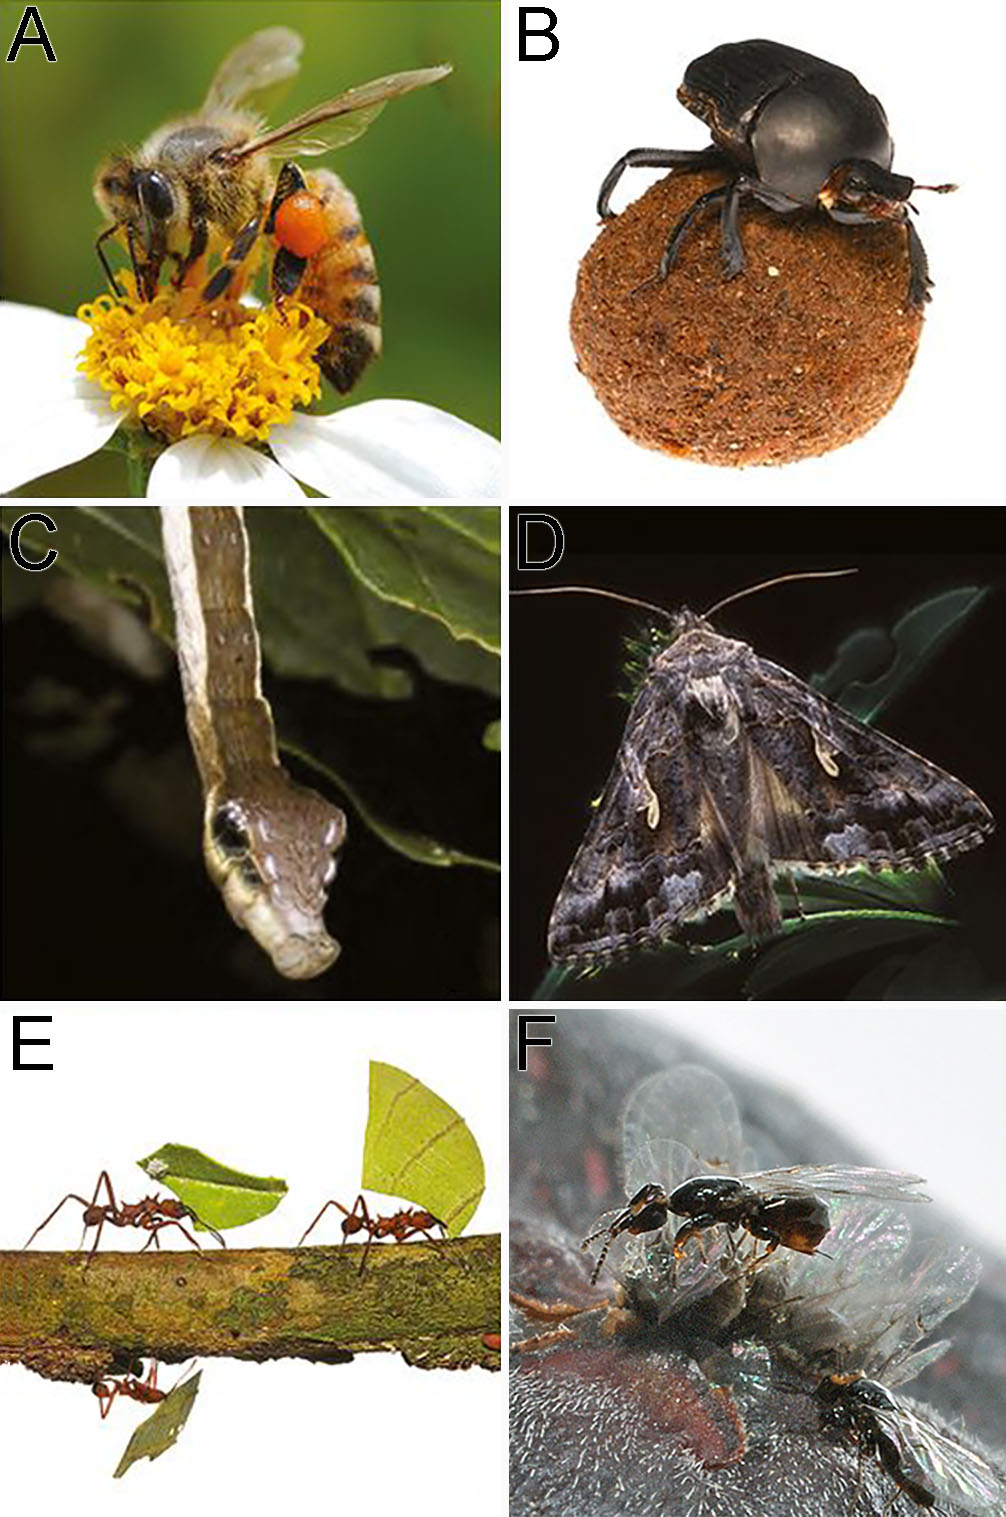 Examples of insects that are beneficial to humans and environment